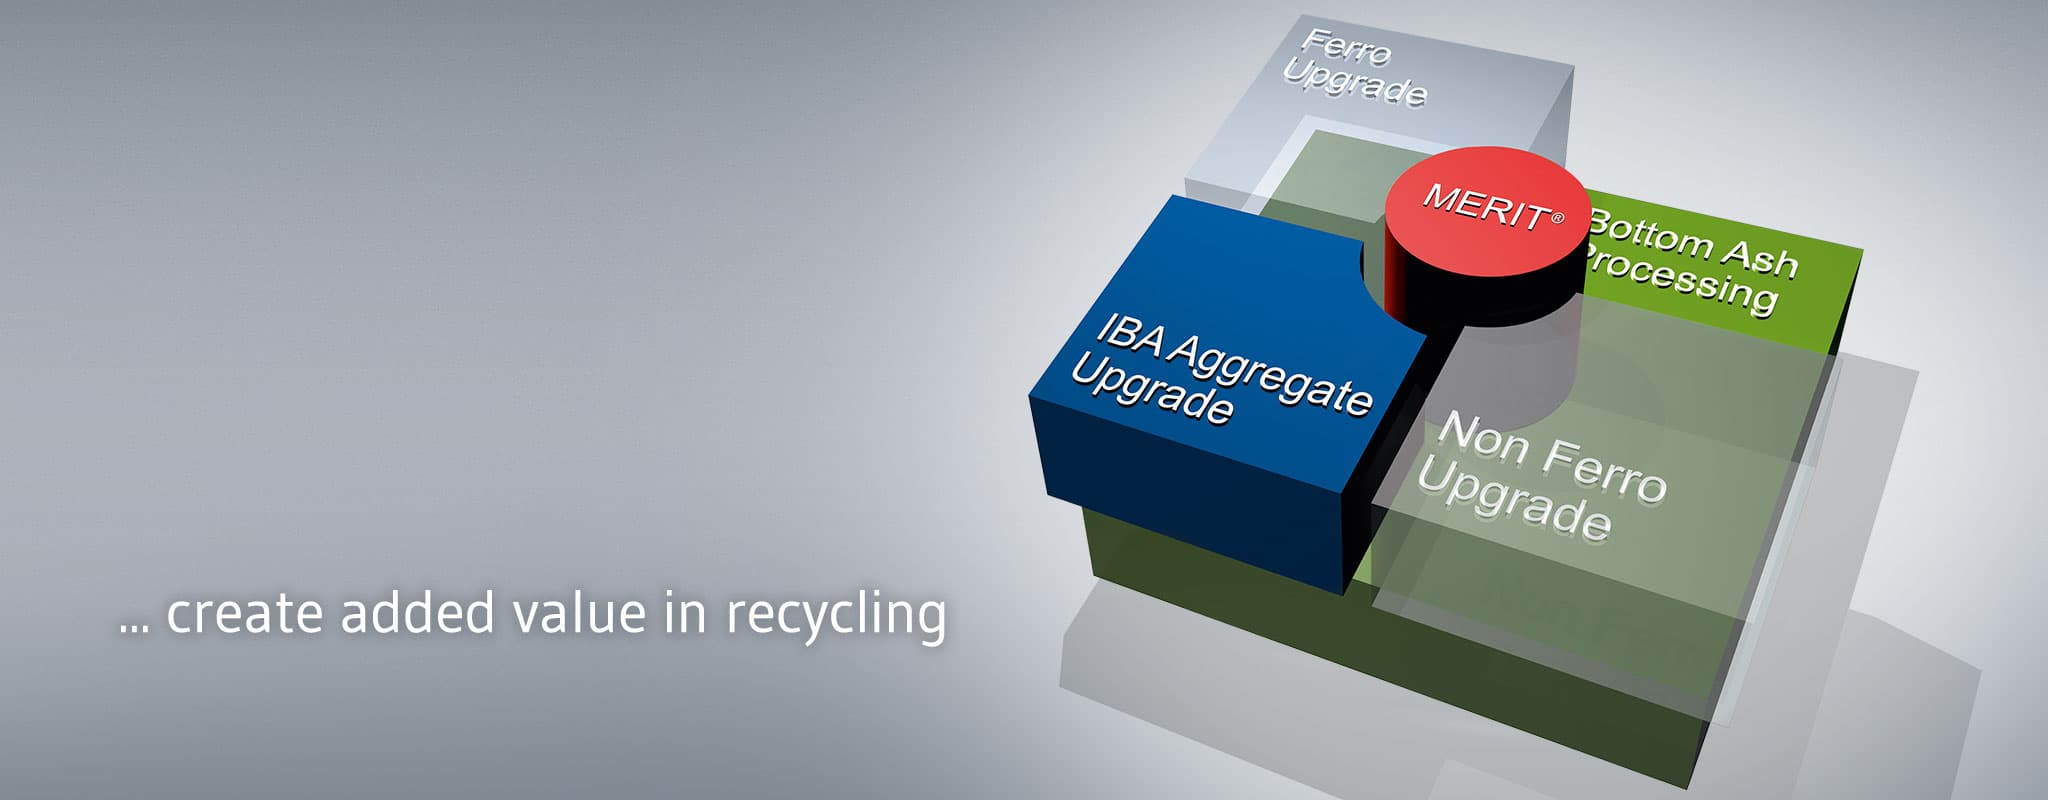 IBA recycling technologies optimise secondary aggregates and metal recovery